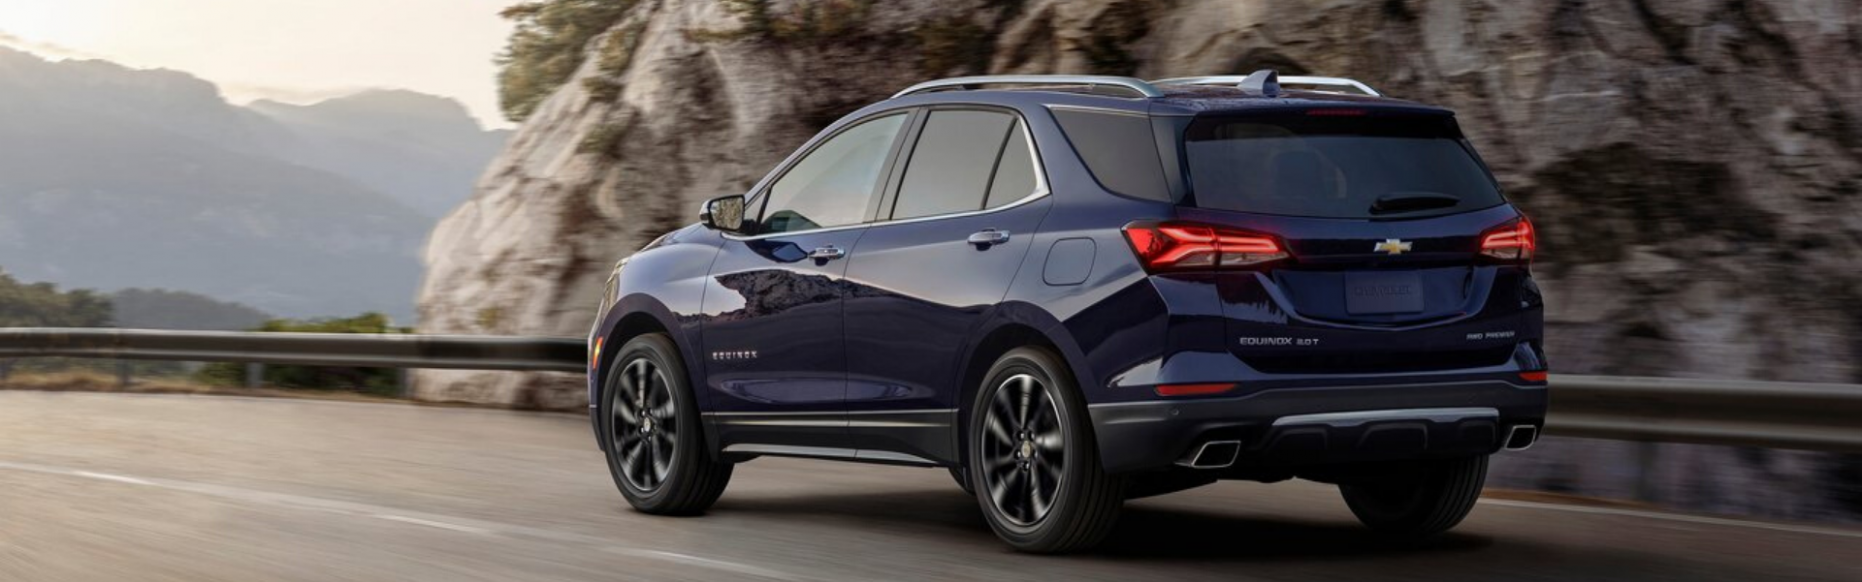 Redesign and Review 2022 Chevrolet Equinox